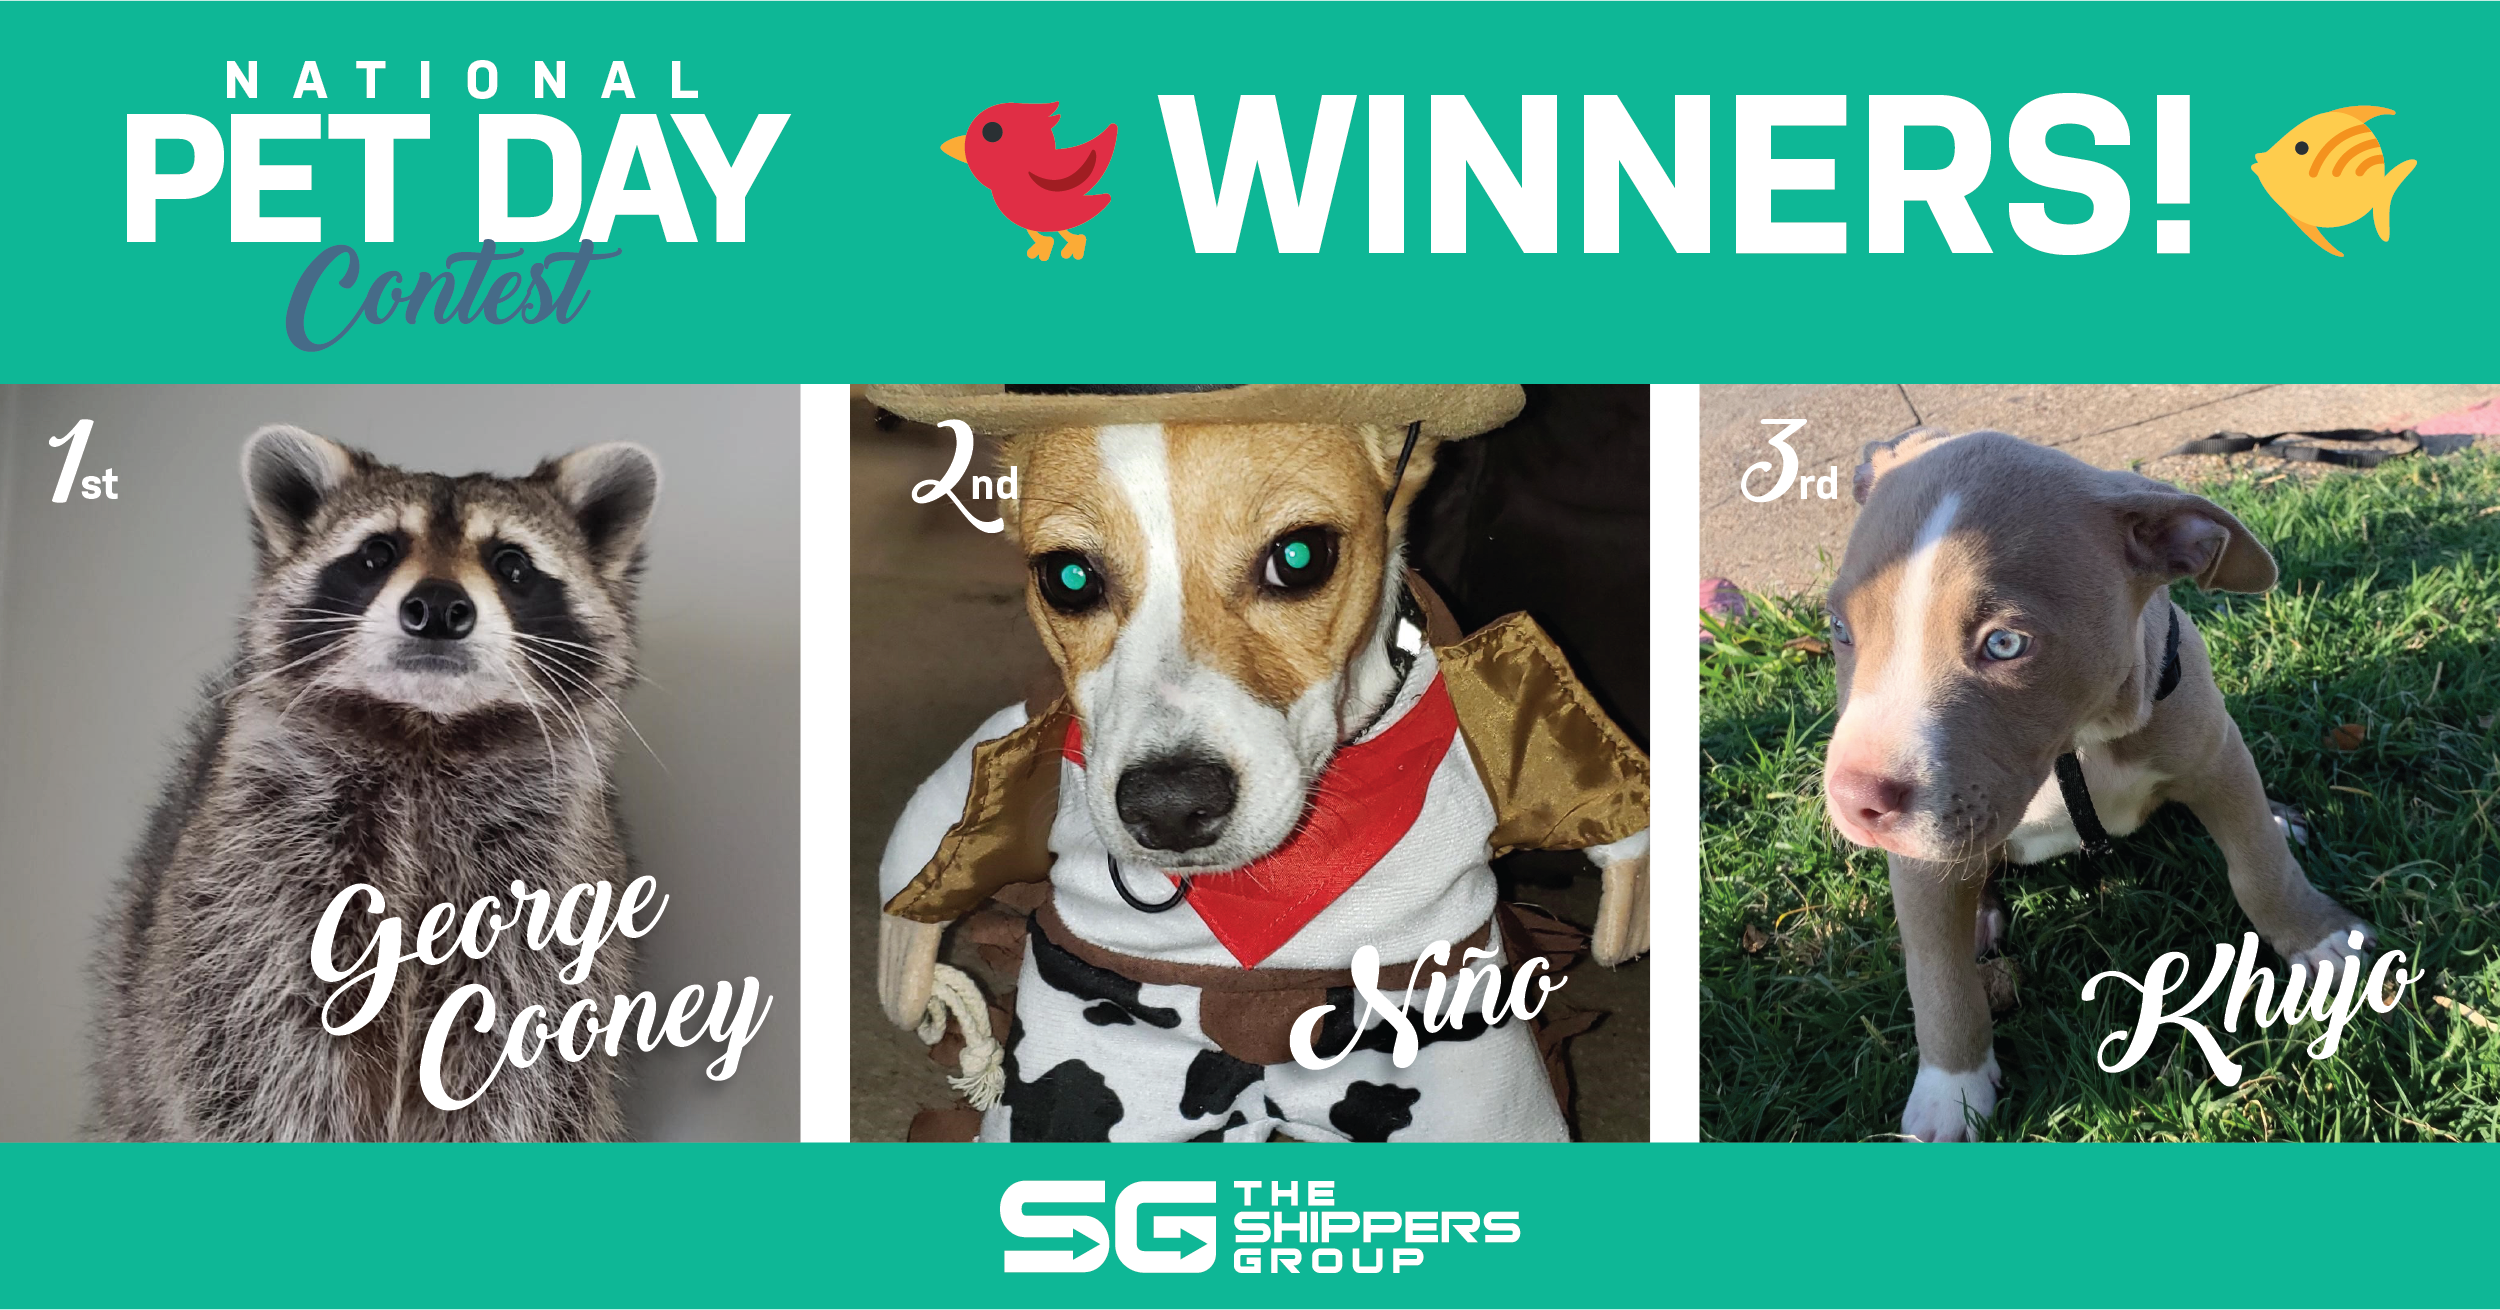 TSG 2nd Annual Pet Day Contest Winners